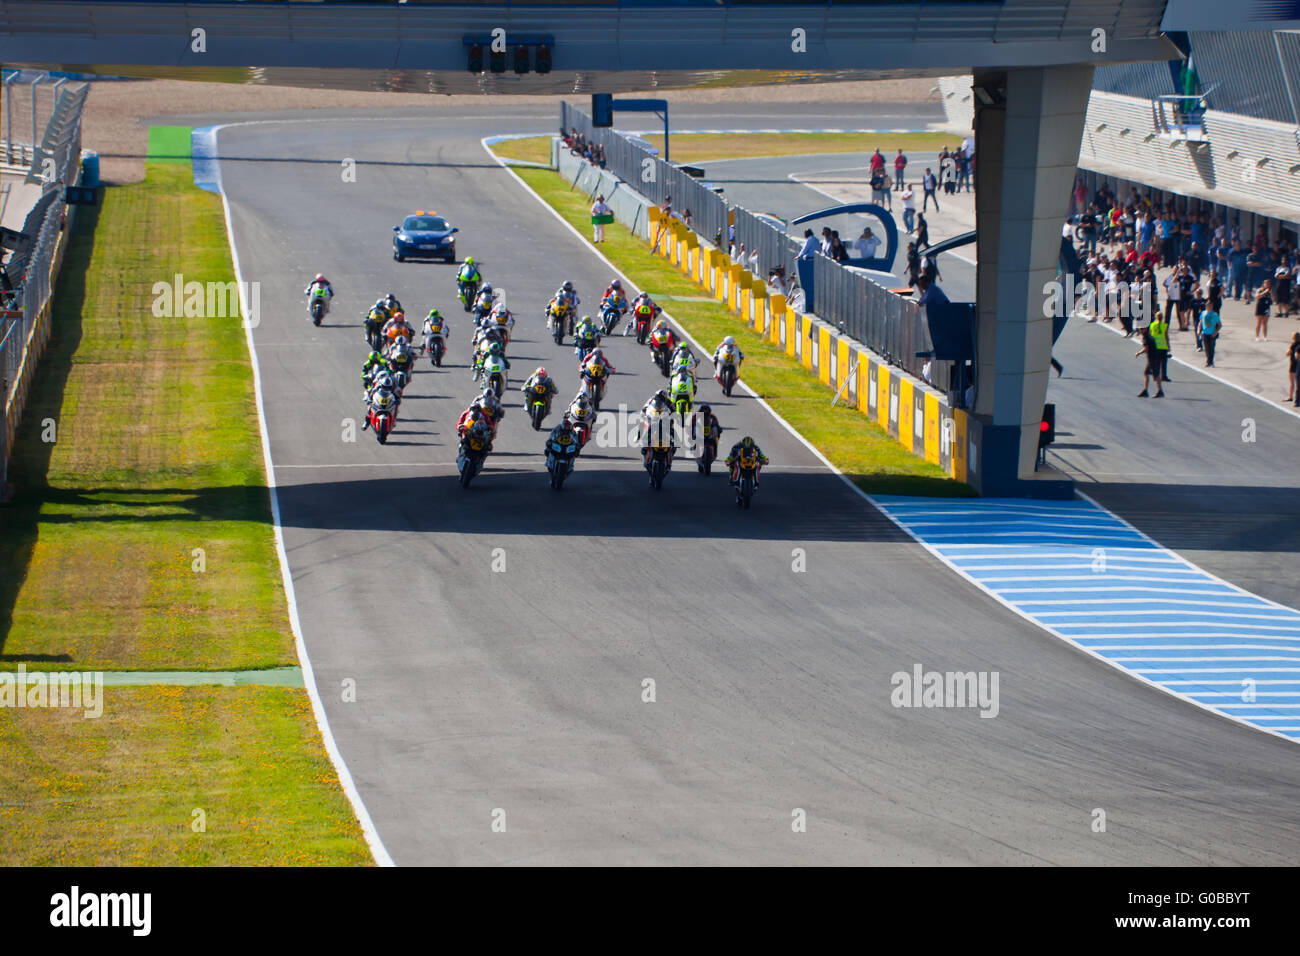 Begin of the race of Moto2 of the CEV Championship - Stock Image